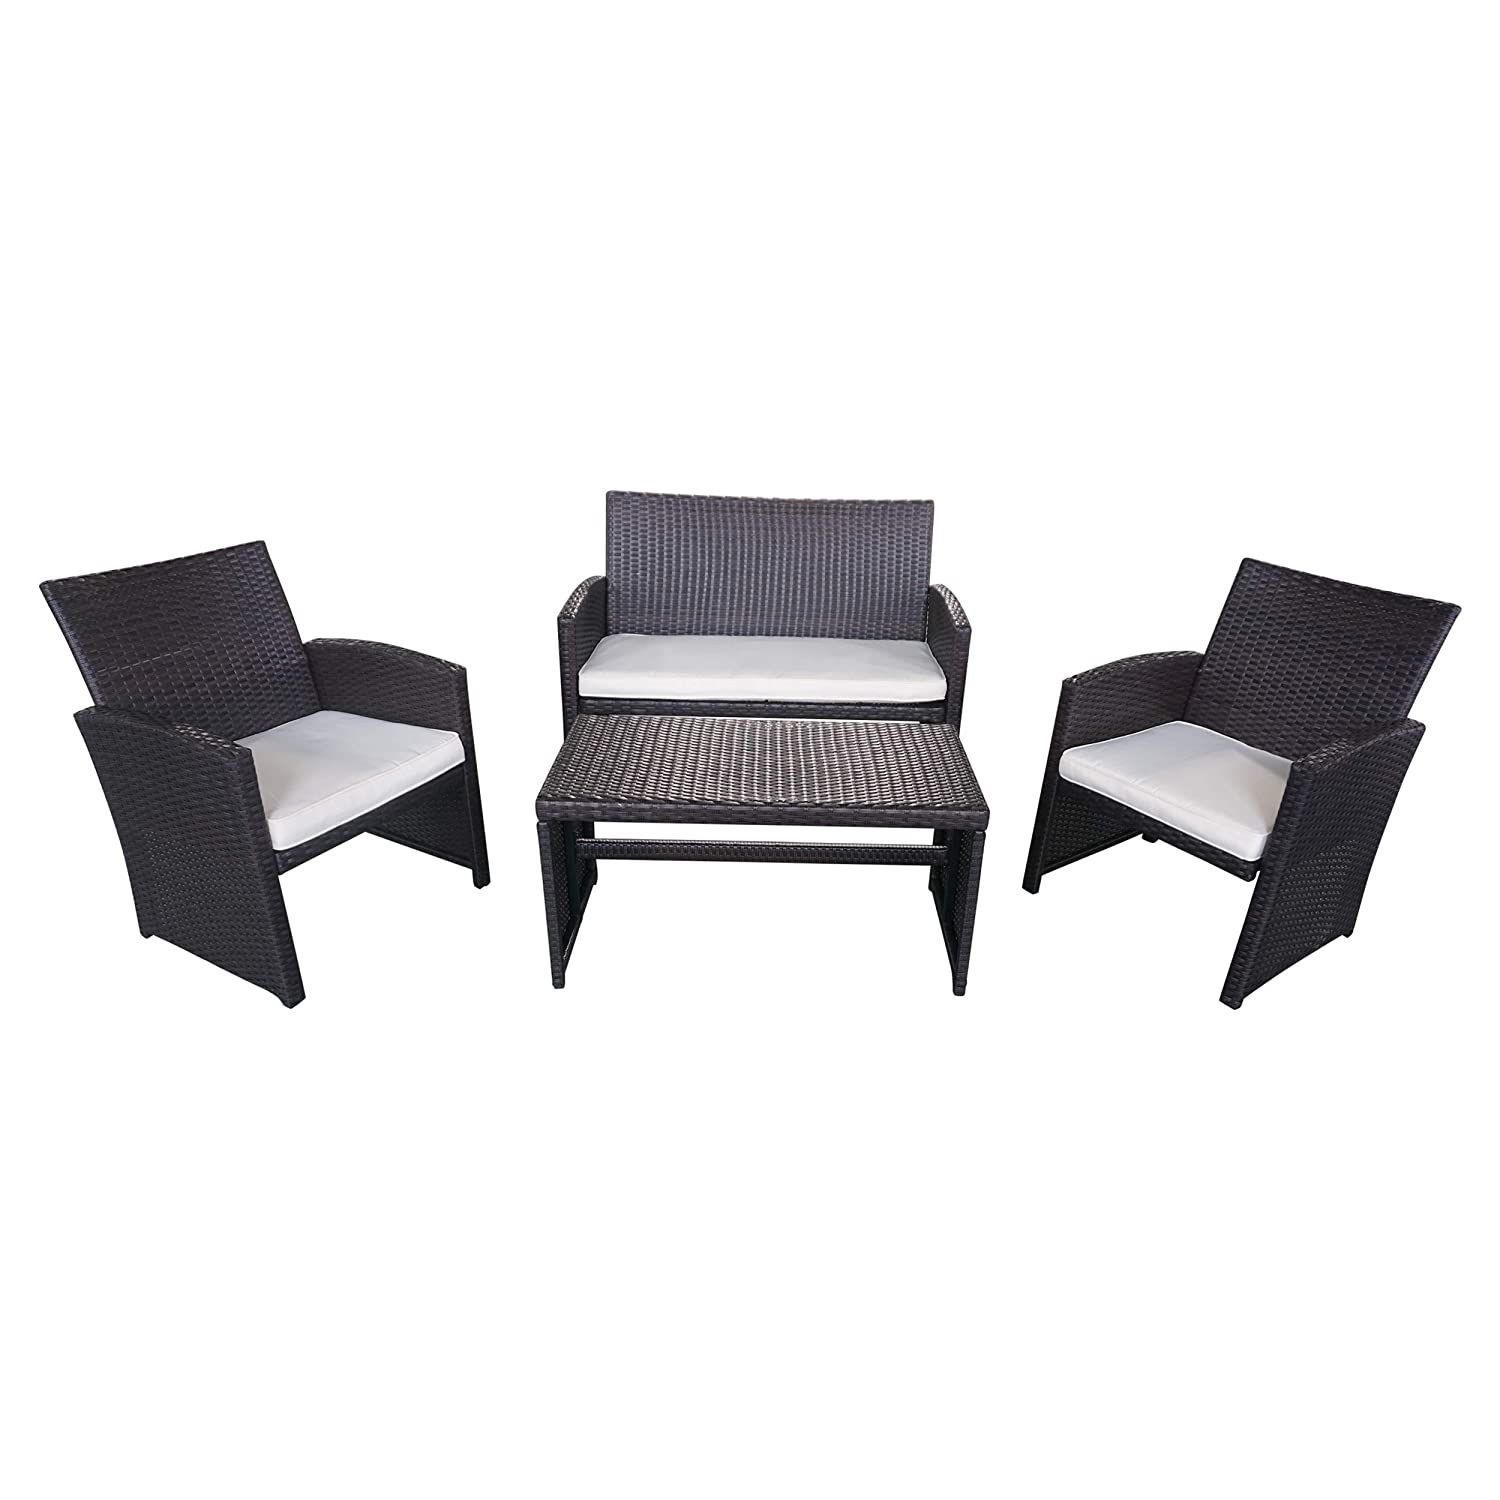 Christopher Knight Home 305820 Patio Chat Set Outdoor Wicker Seating for 4, Brown